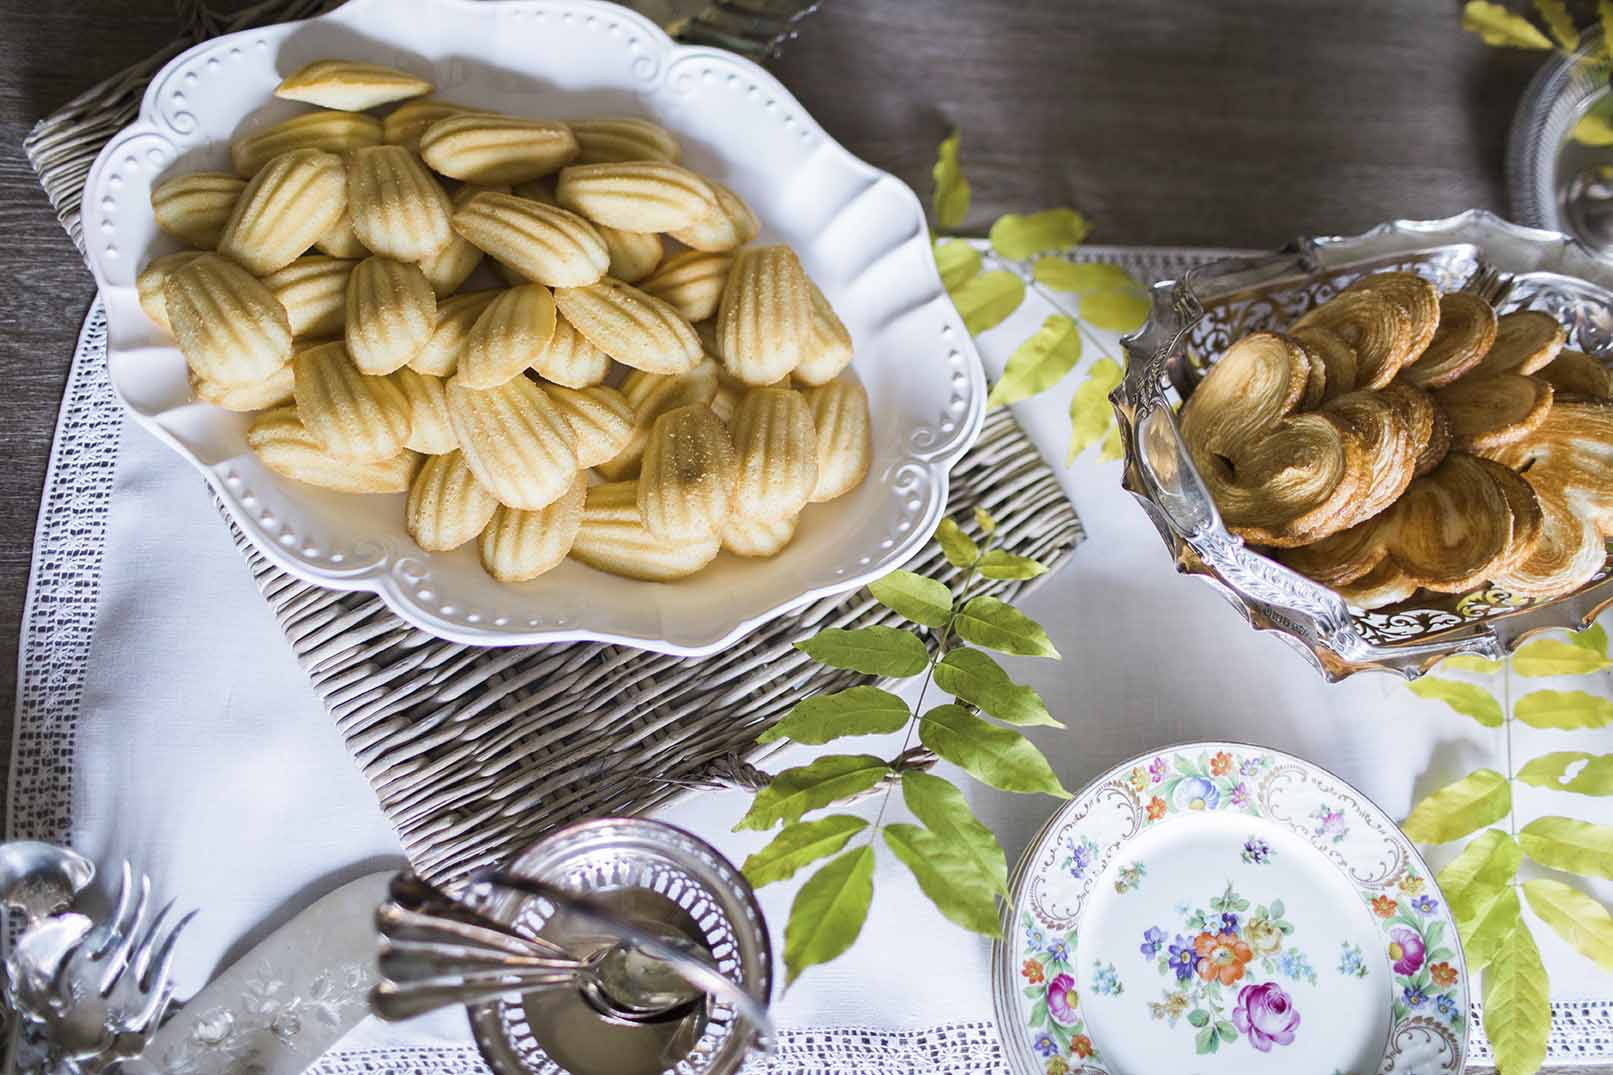 table setting with artisan food and antique silverware